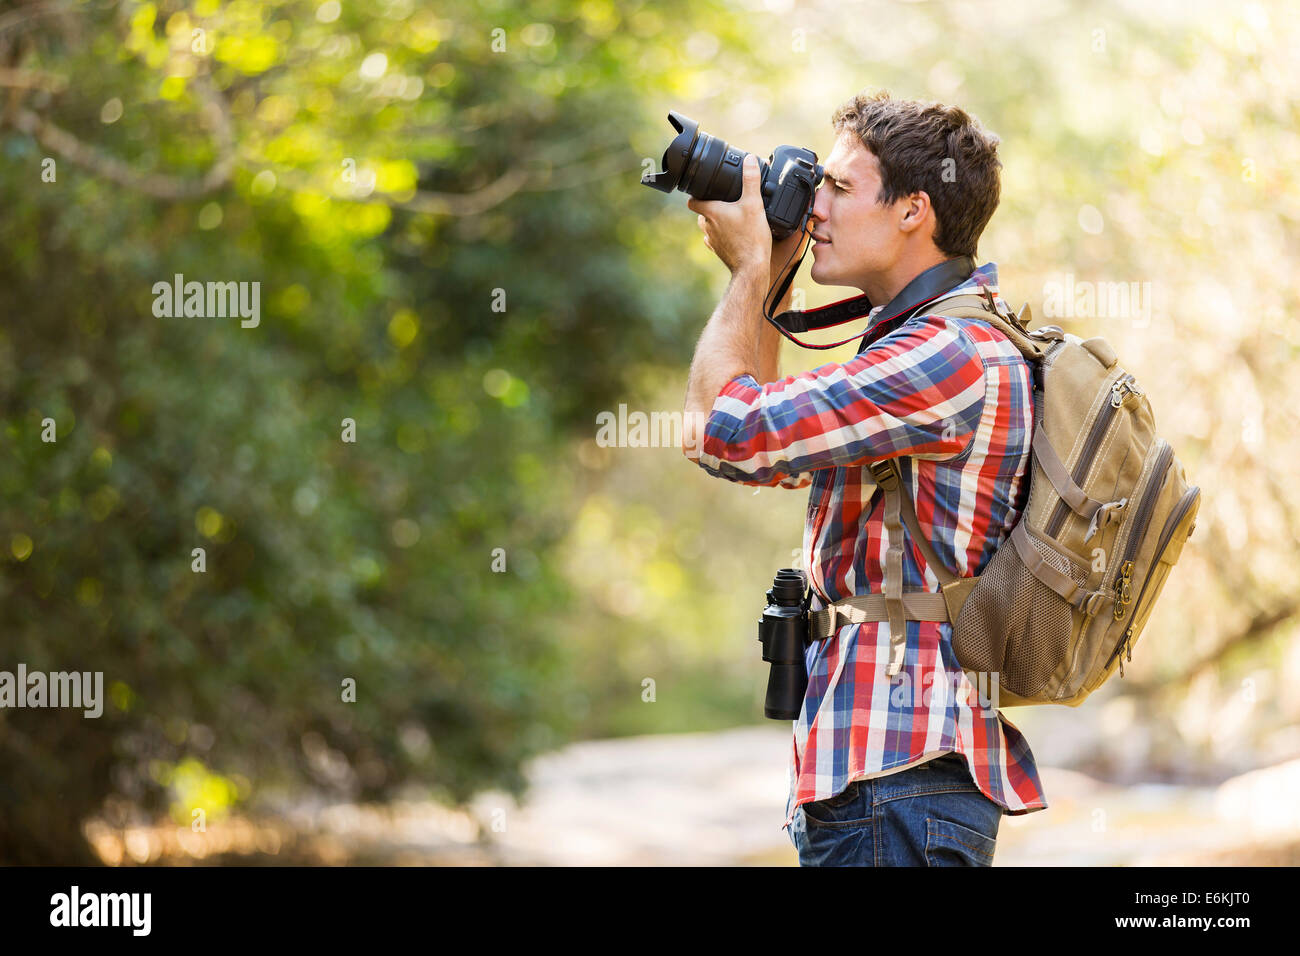 young hiker taking photos in mountain valley - Stock Image